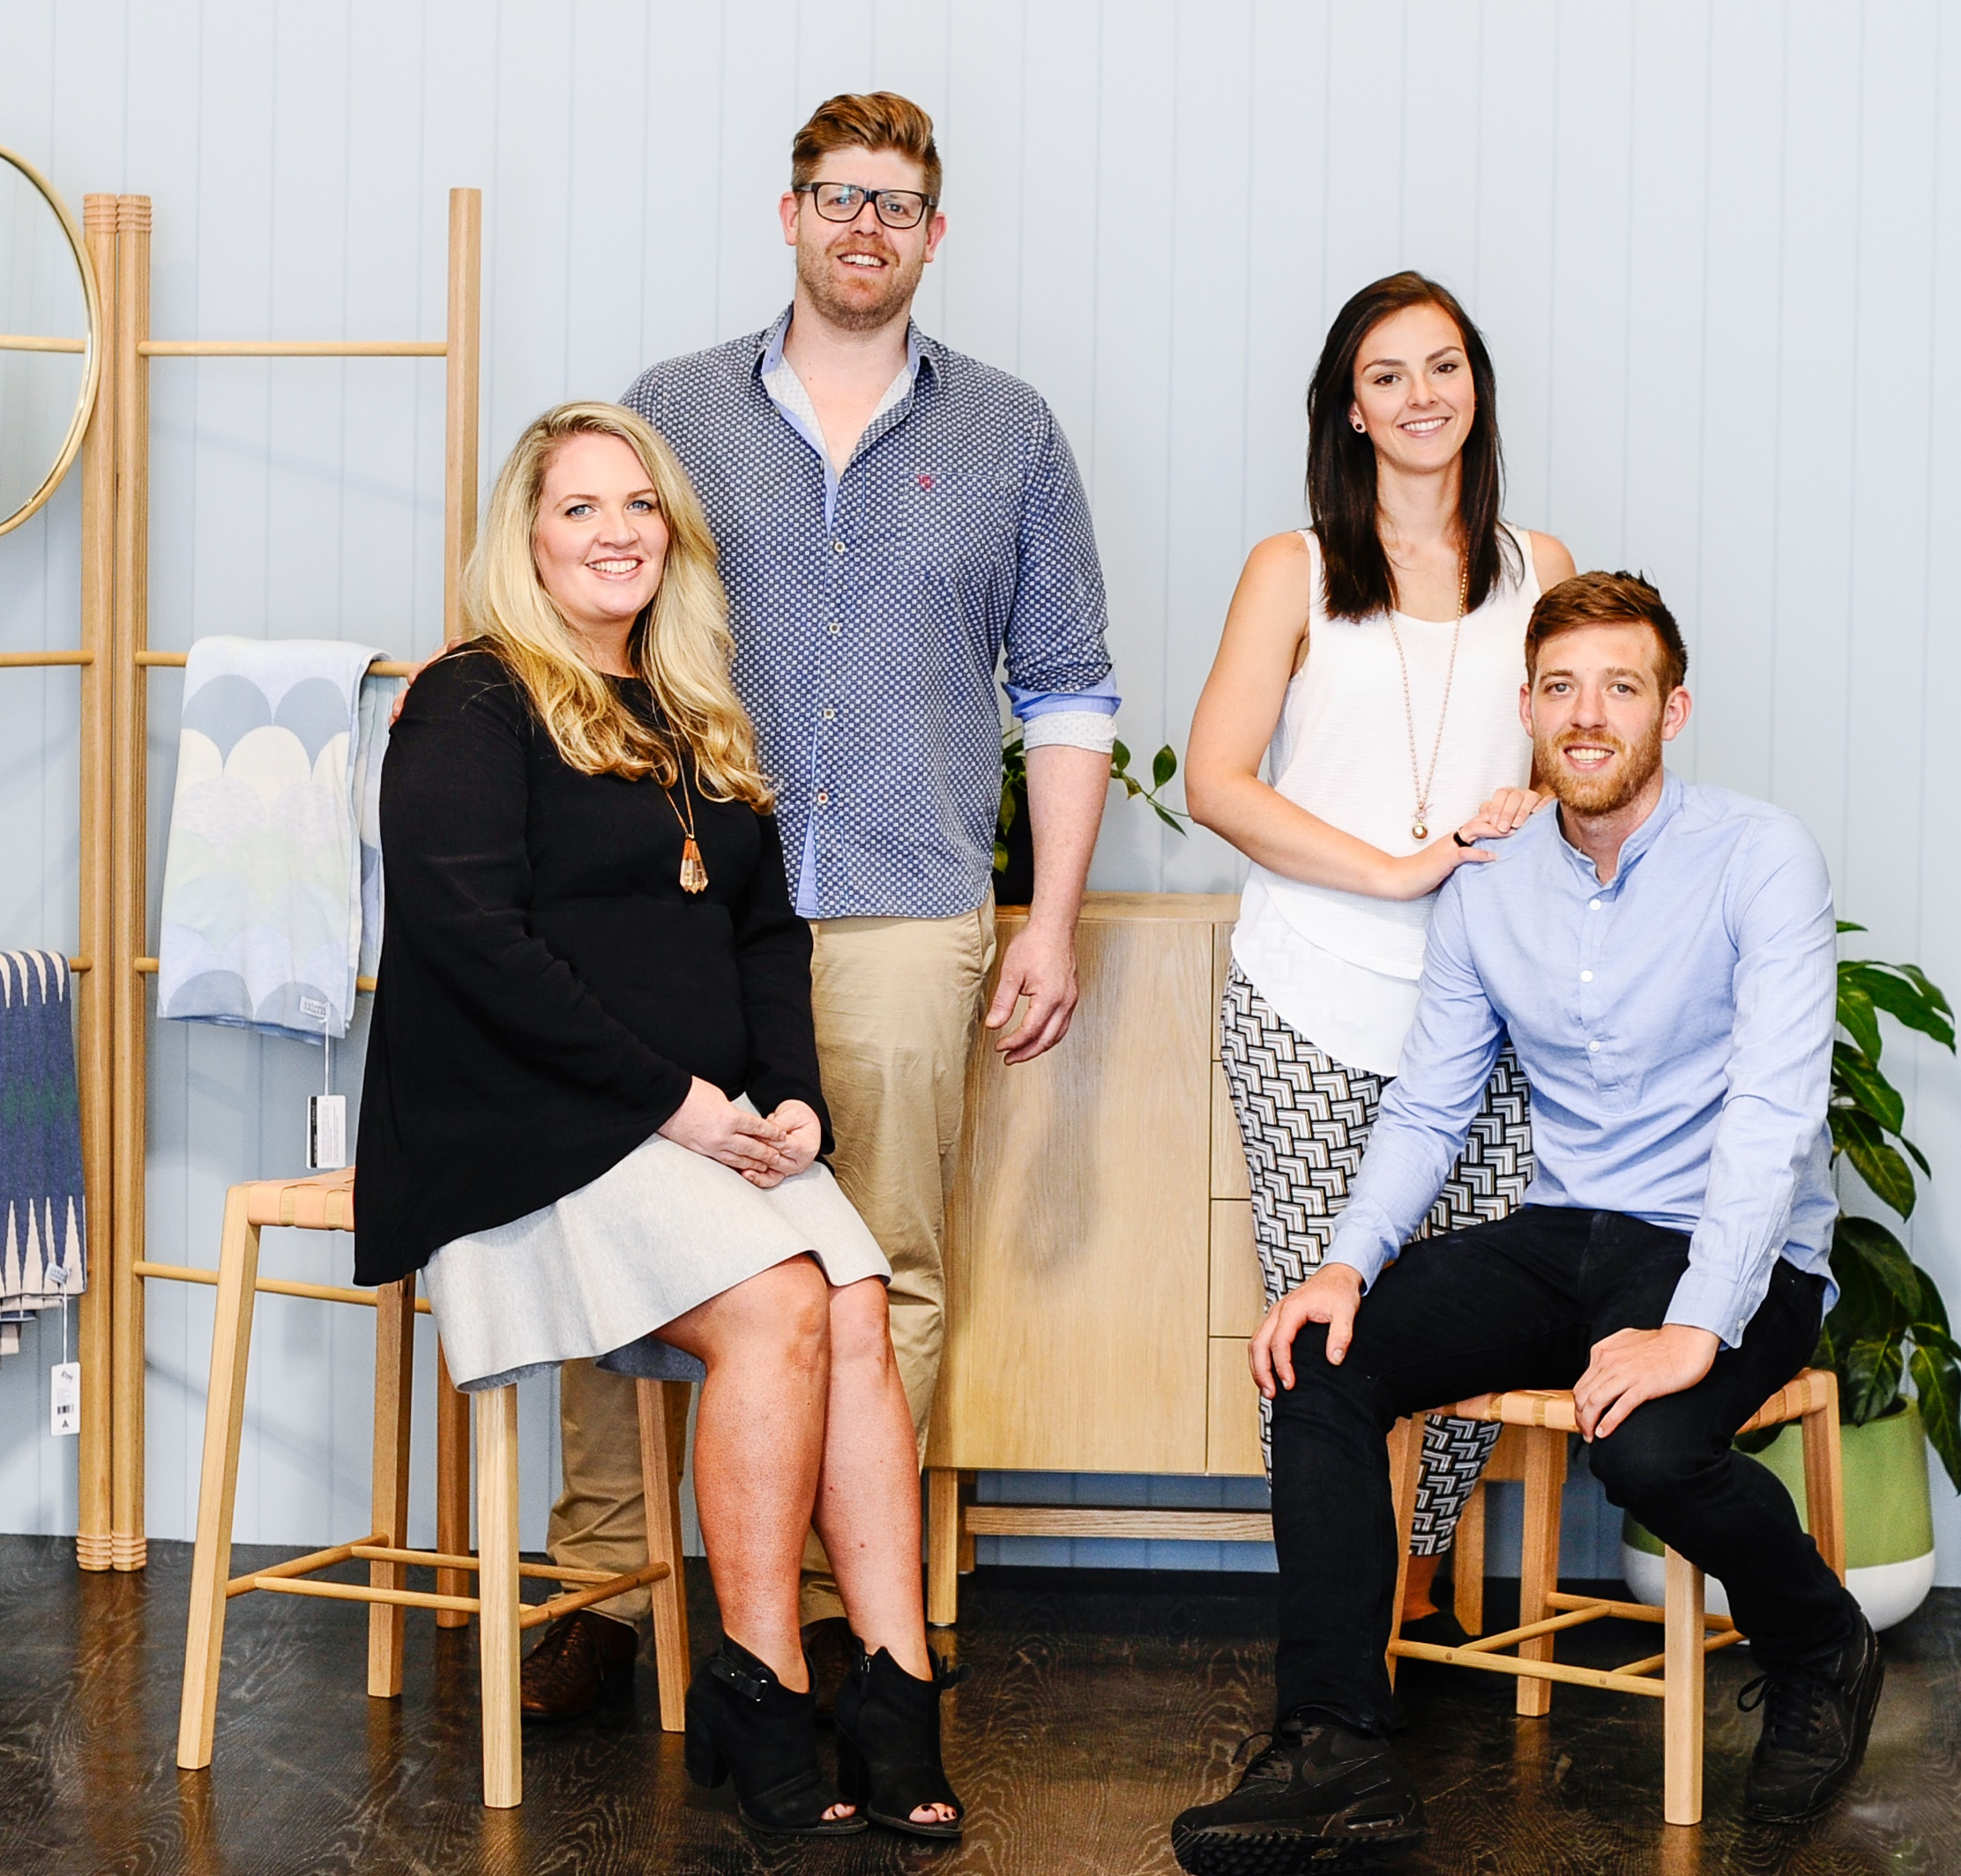 The creative duo's behind the Makers Collective Pop Up : Lucy Grant and Adam Brislin from Beeline Design and Antonia Monongiello and Ian Anderson from Felix Furniture. Image credit : Haley Kigbo